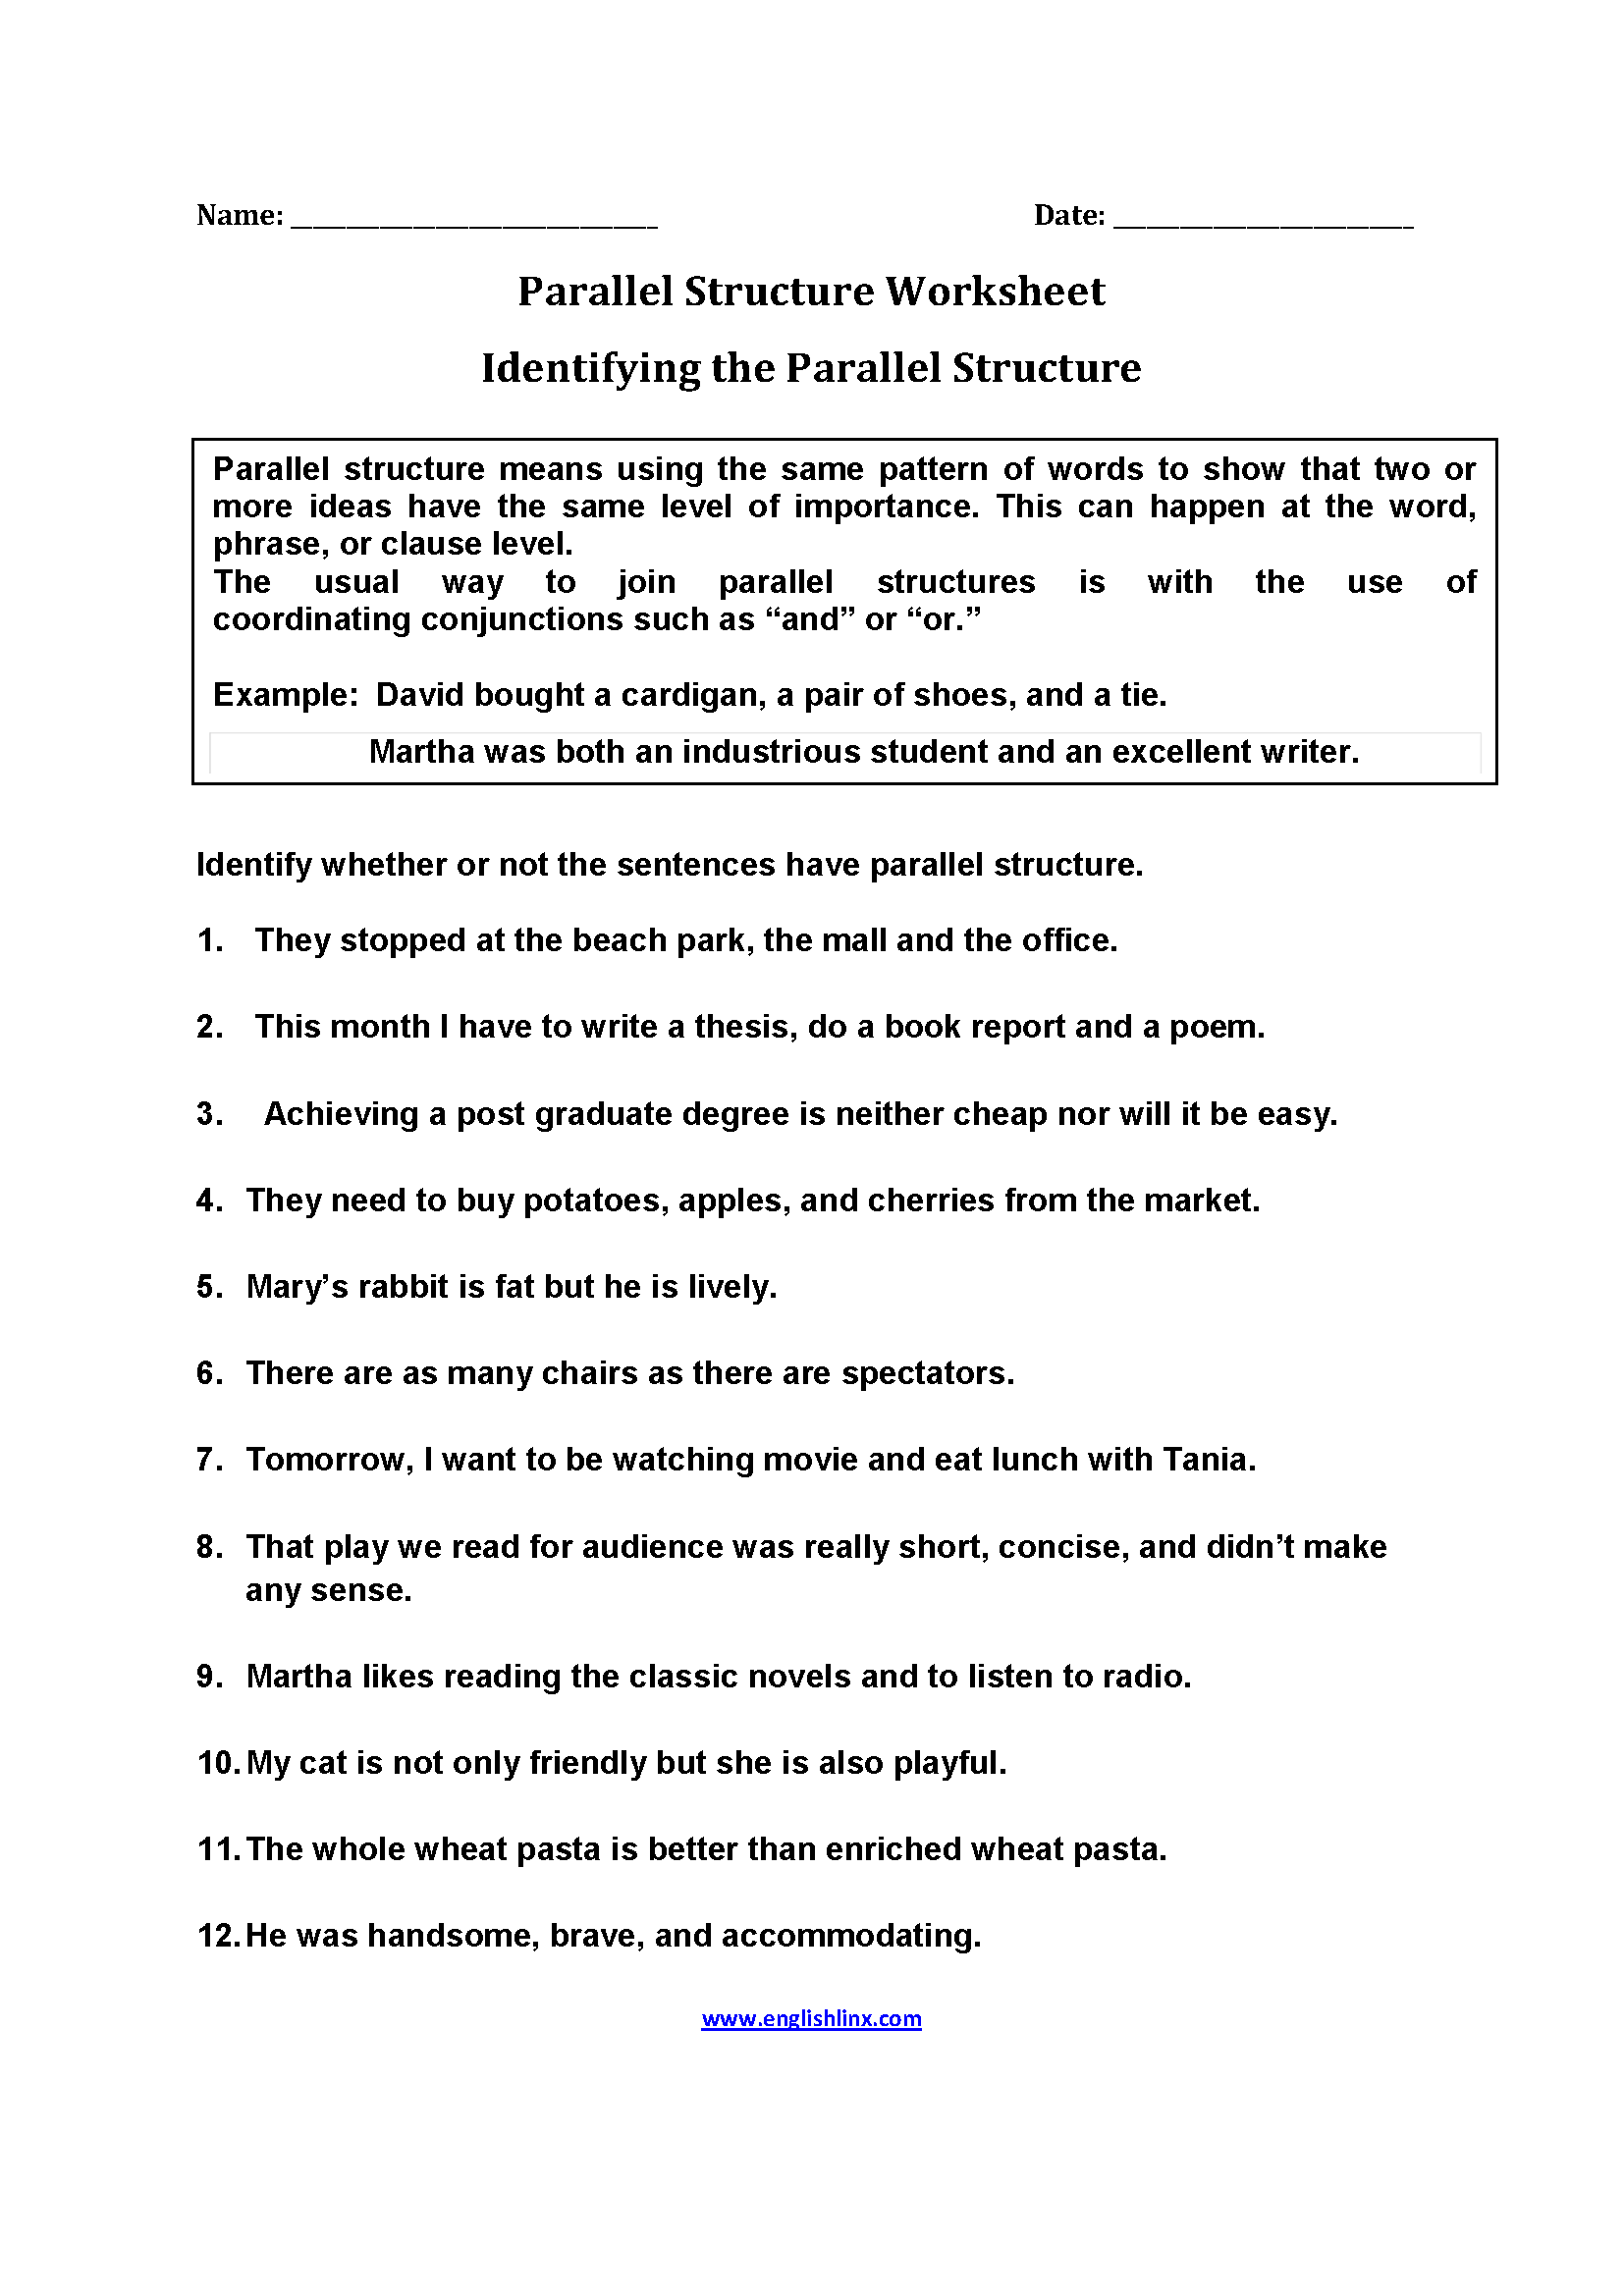 Parallel Structure Worksheets Subject And Predicate Worksheets Subject And Predicate Complex Sentences Worksheets